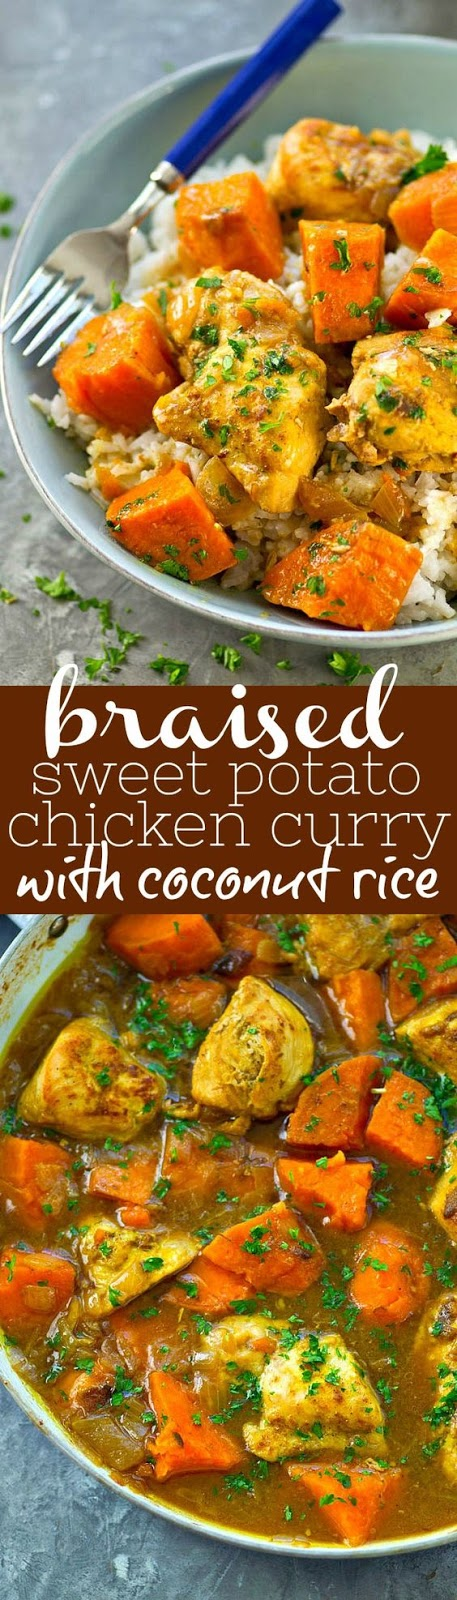 Braised Sweet Potato Chicken Curry with Coconut Rice